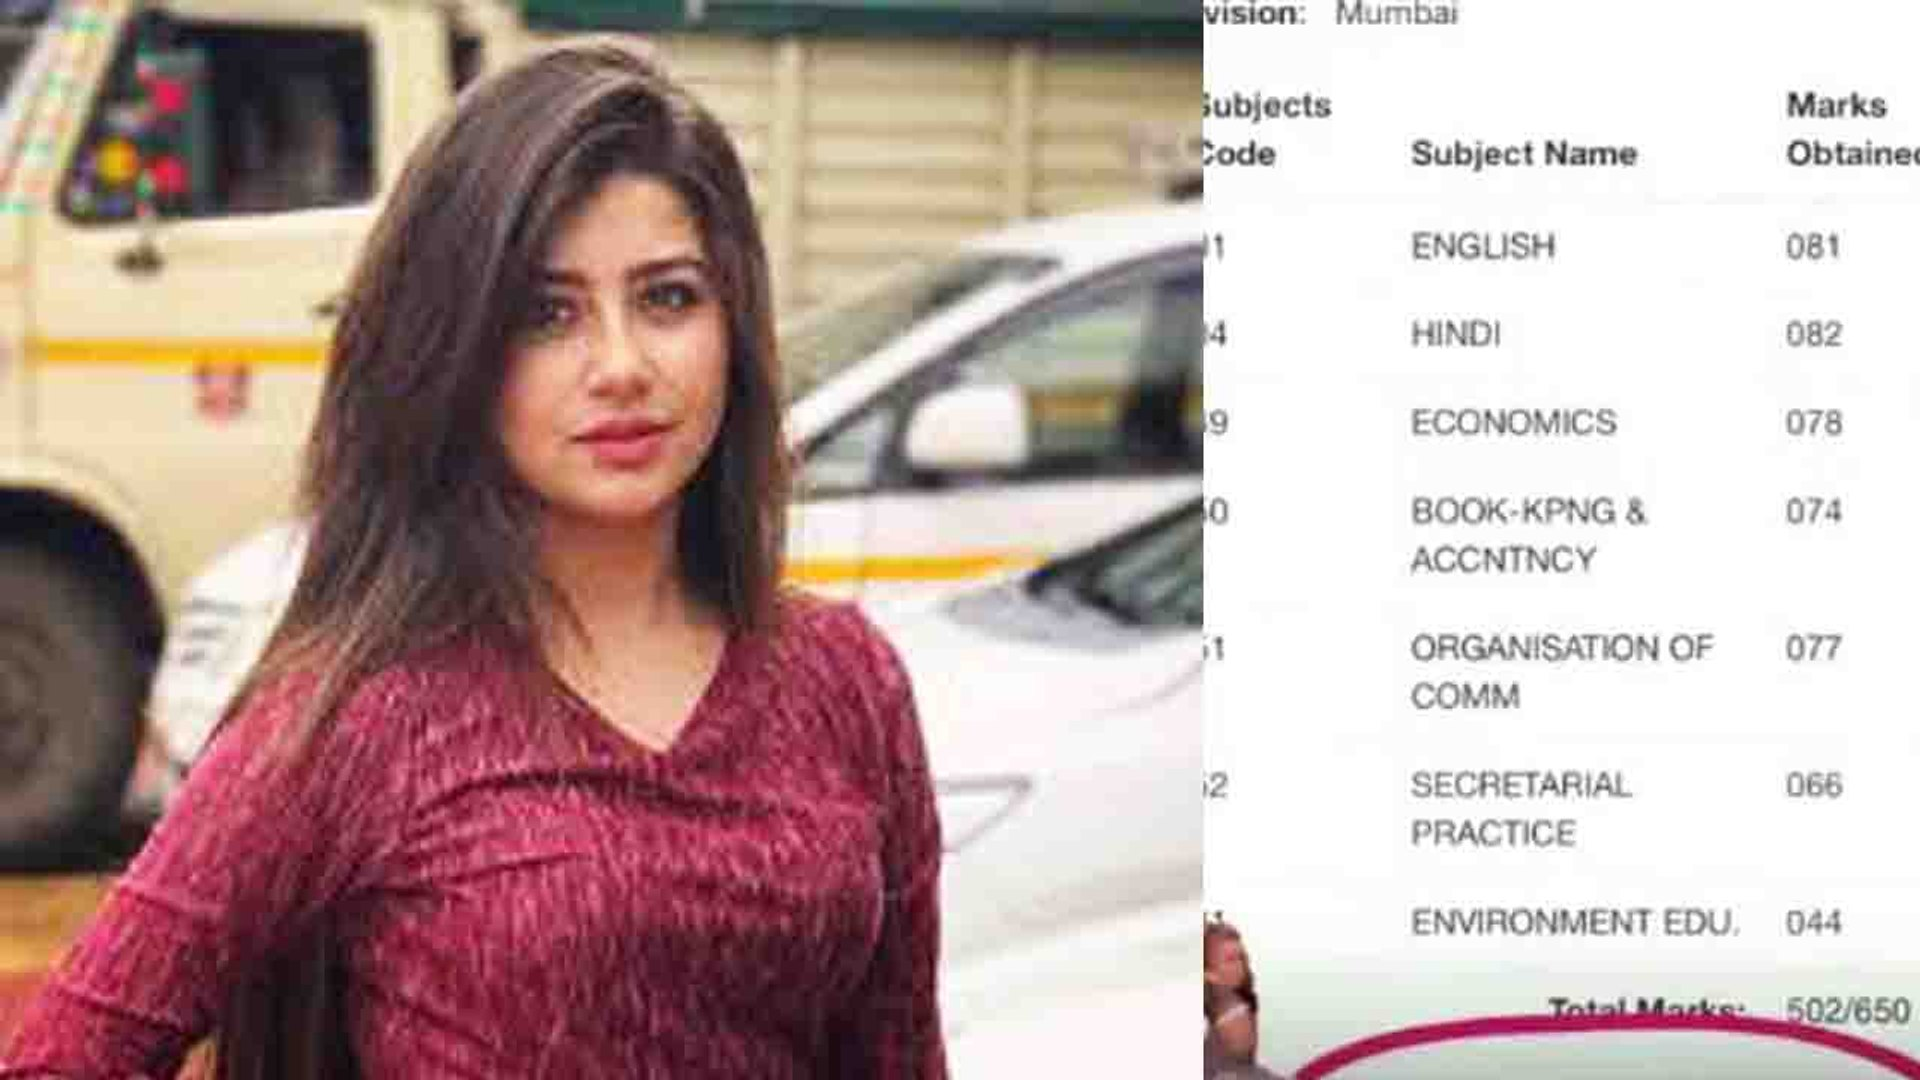 Ye Hai Mohabbatien actress Aditi Bhatia's 12th Exam result is out; Check out her SCORE |FilmiBe